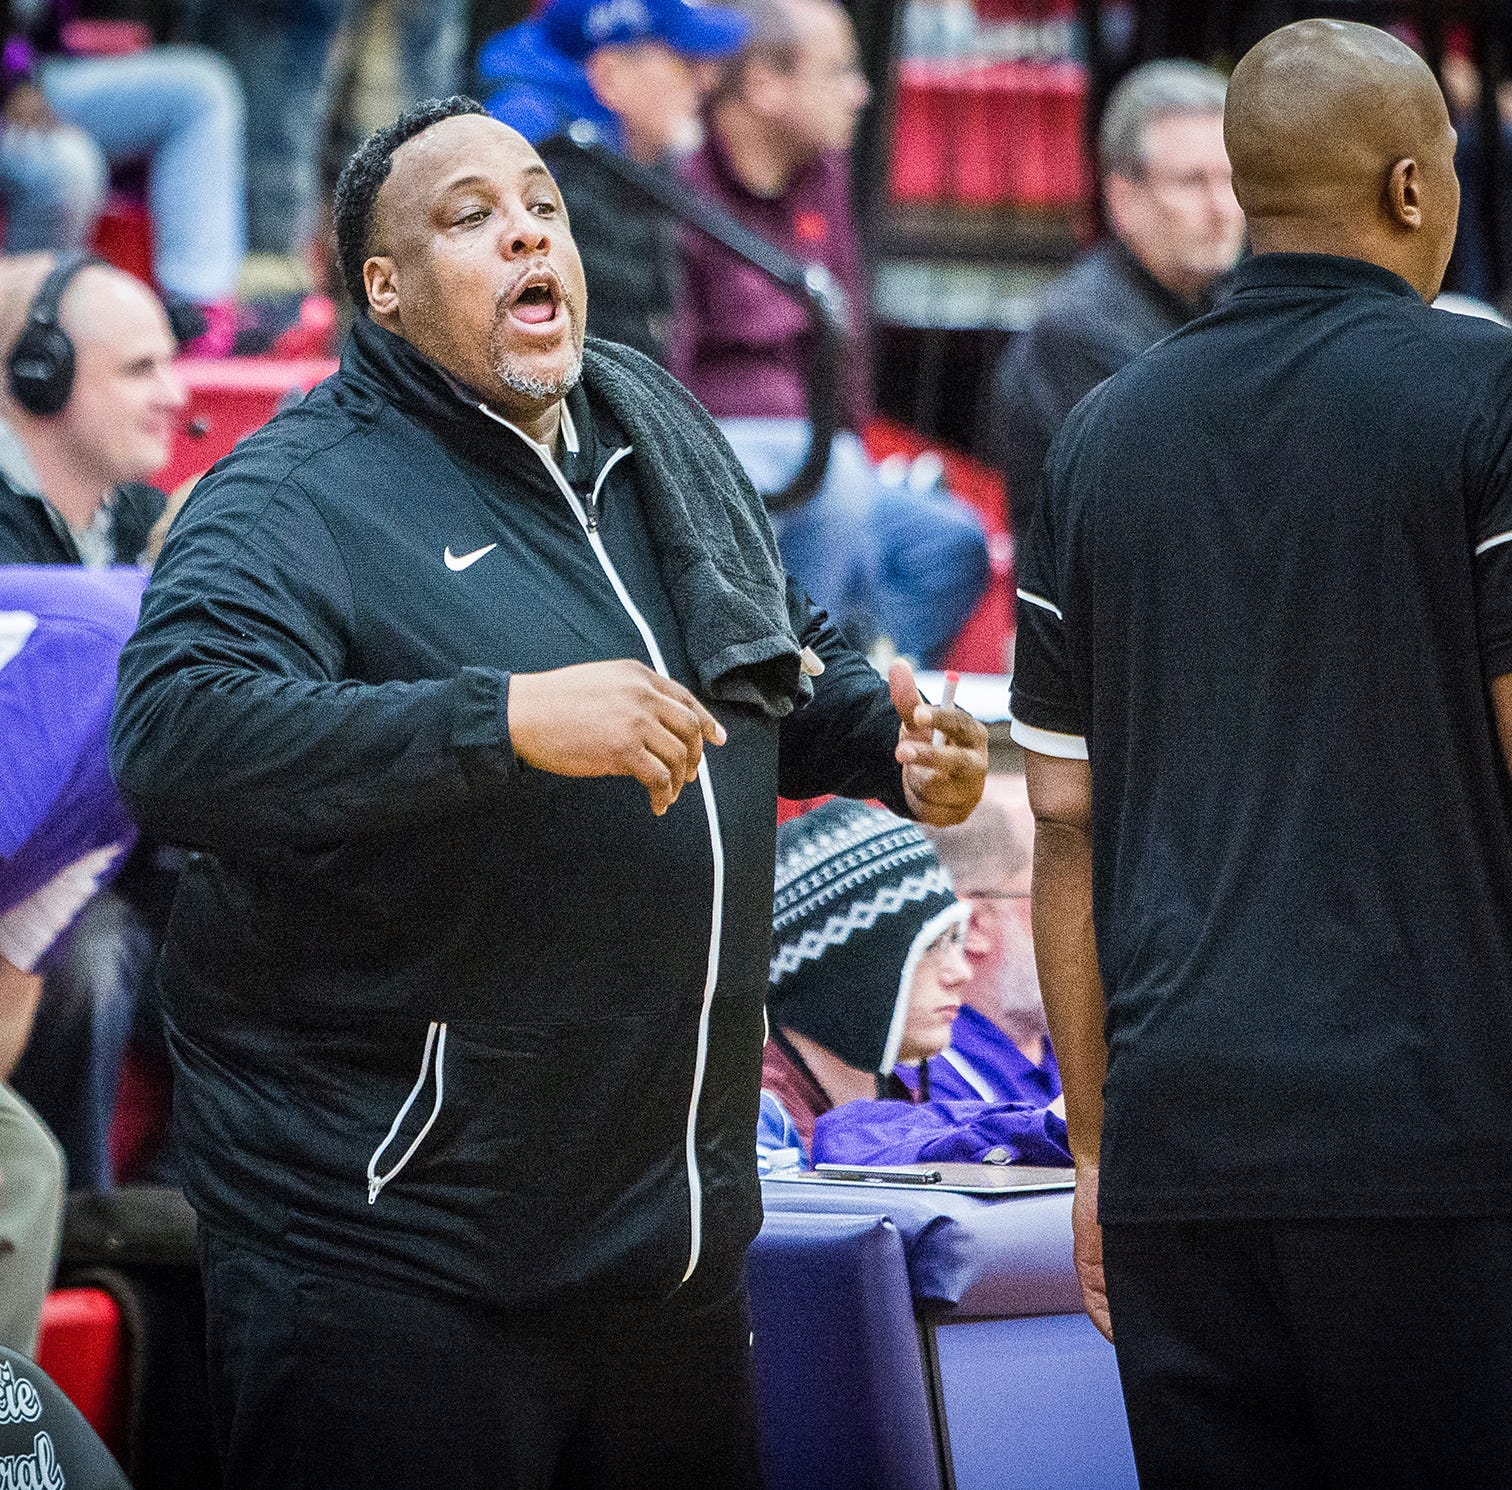 3 takeaways for ECI schools from IHSAA's boys basketball classifications